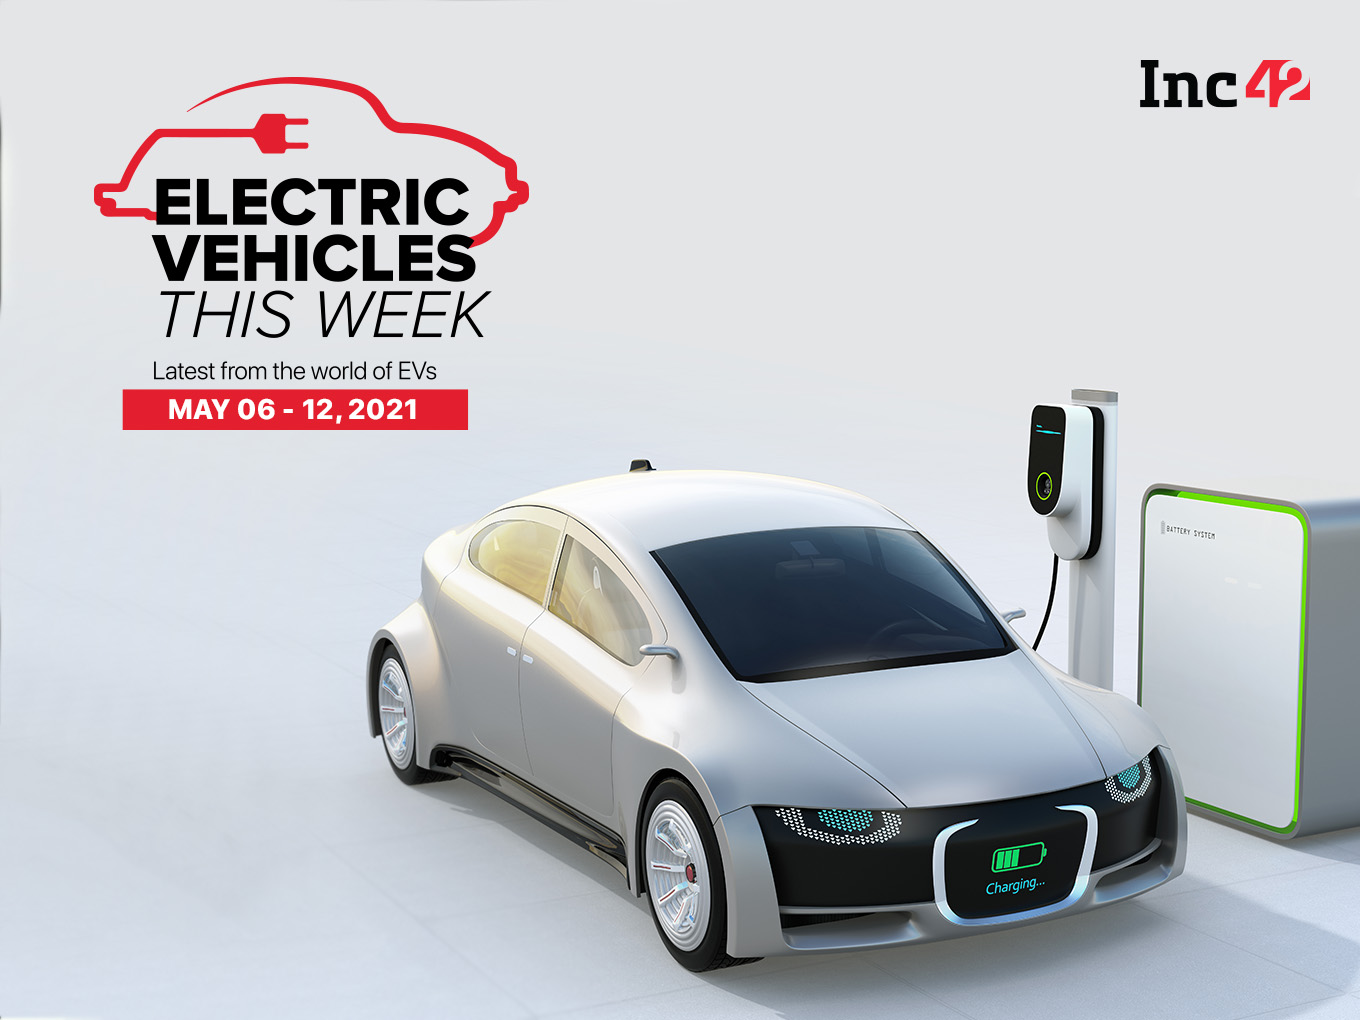 Electric Vehicles This Week: Ola EV Cabs, India's PLI Scheme & More